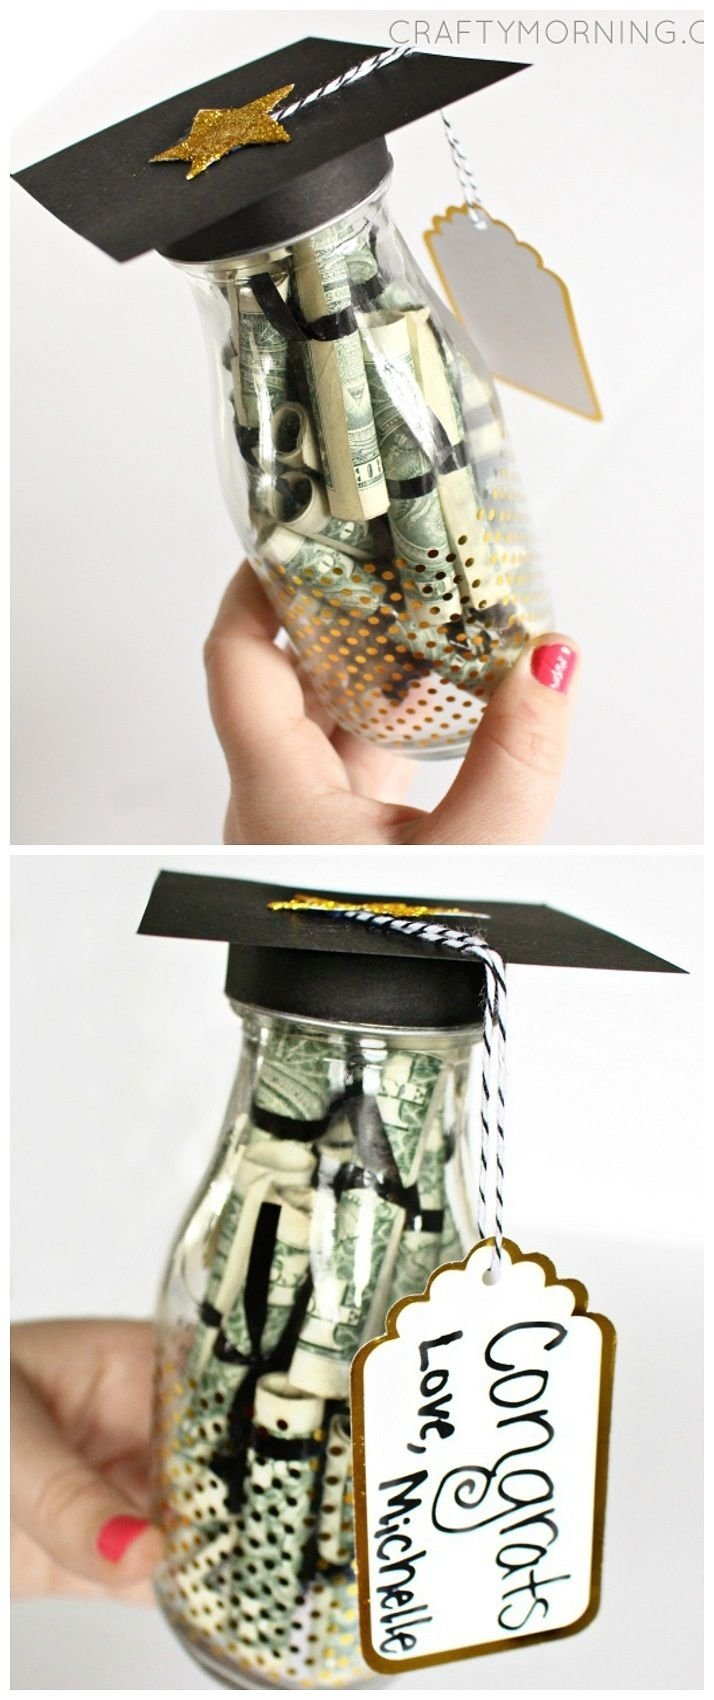 276 best graduation gift ideas images on pinterest | cute ideas